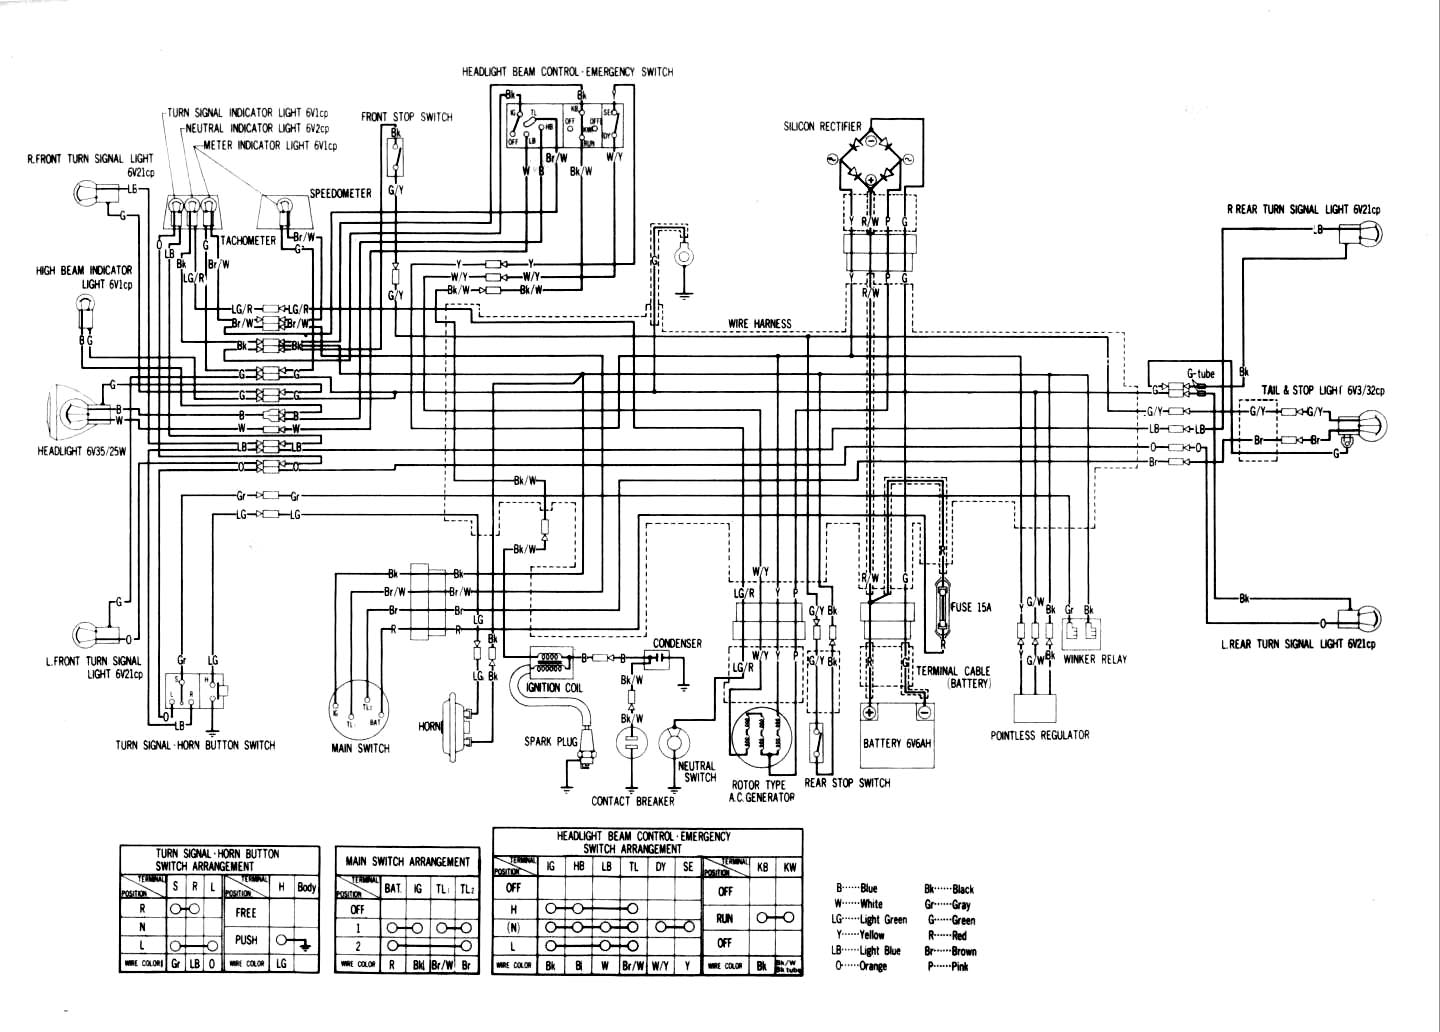 1975 gl1000 goldwing wiring diagram